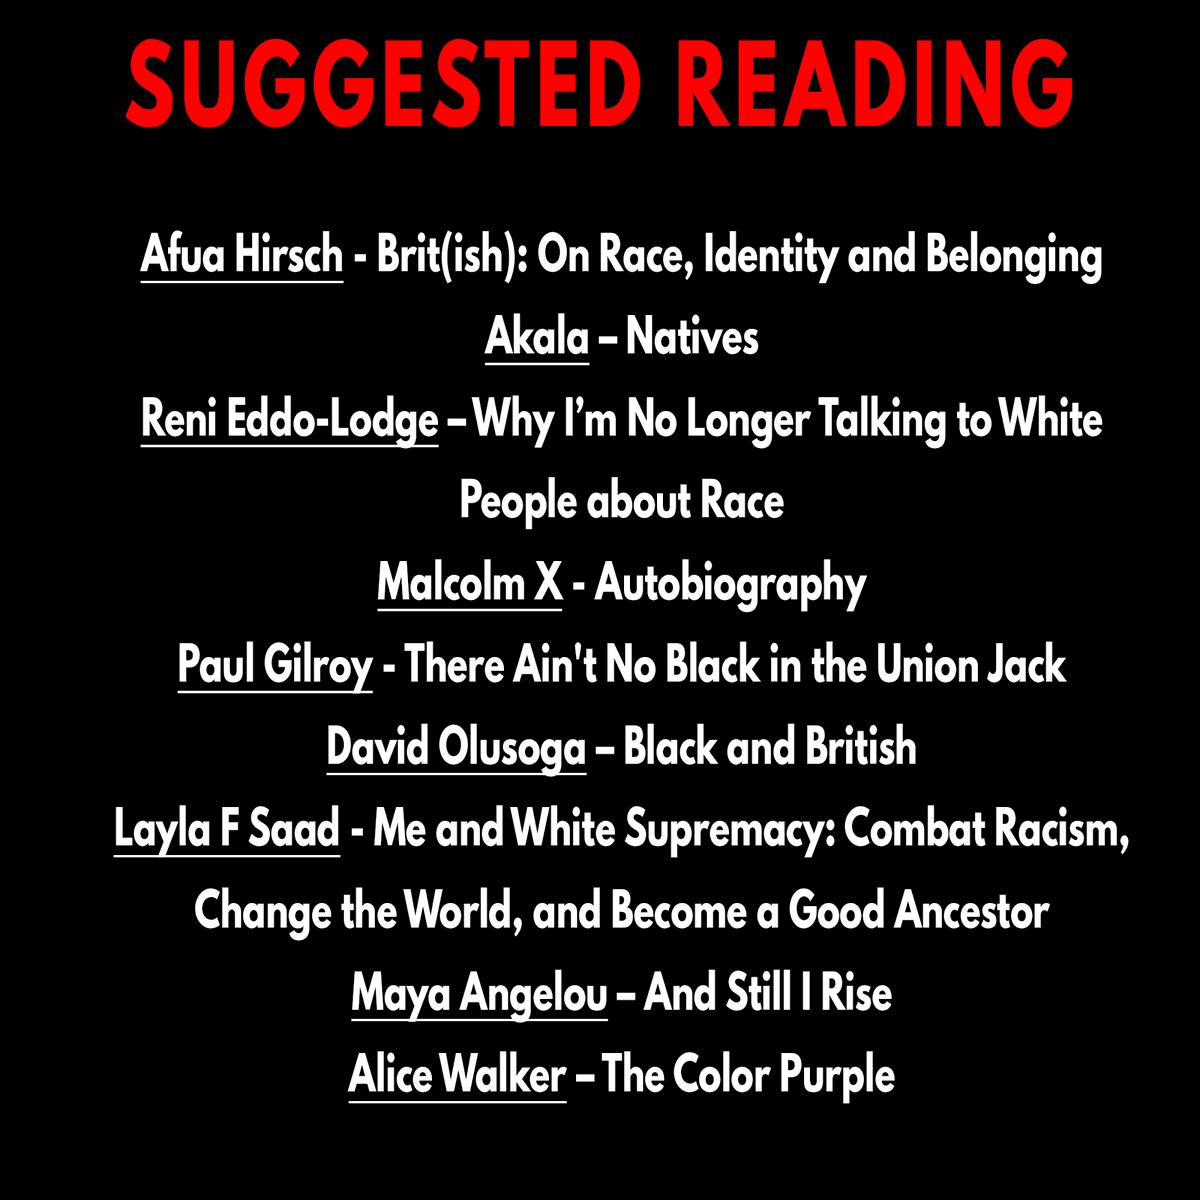 Suggested reading: